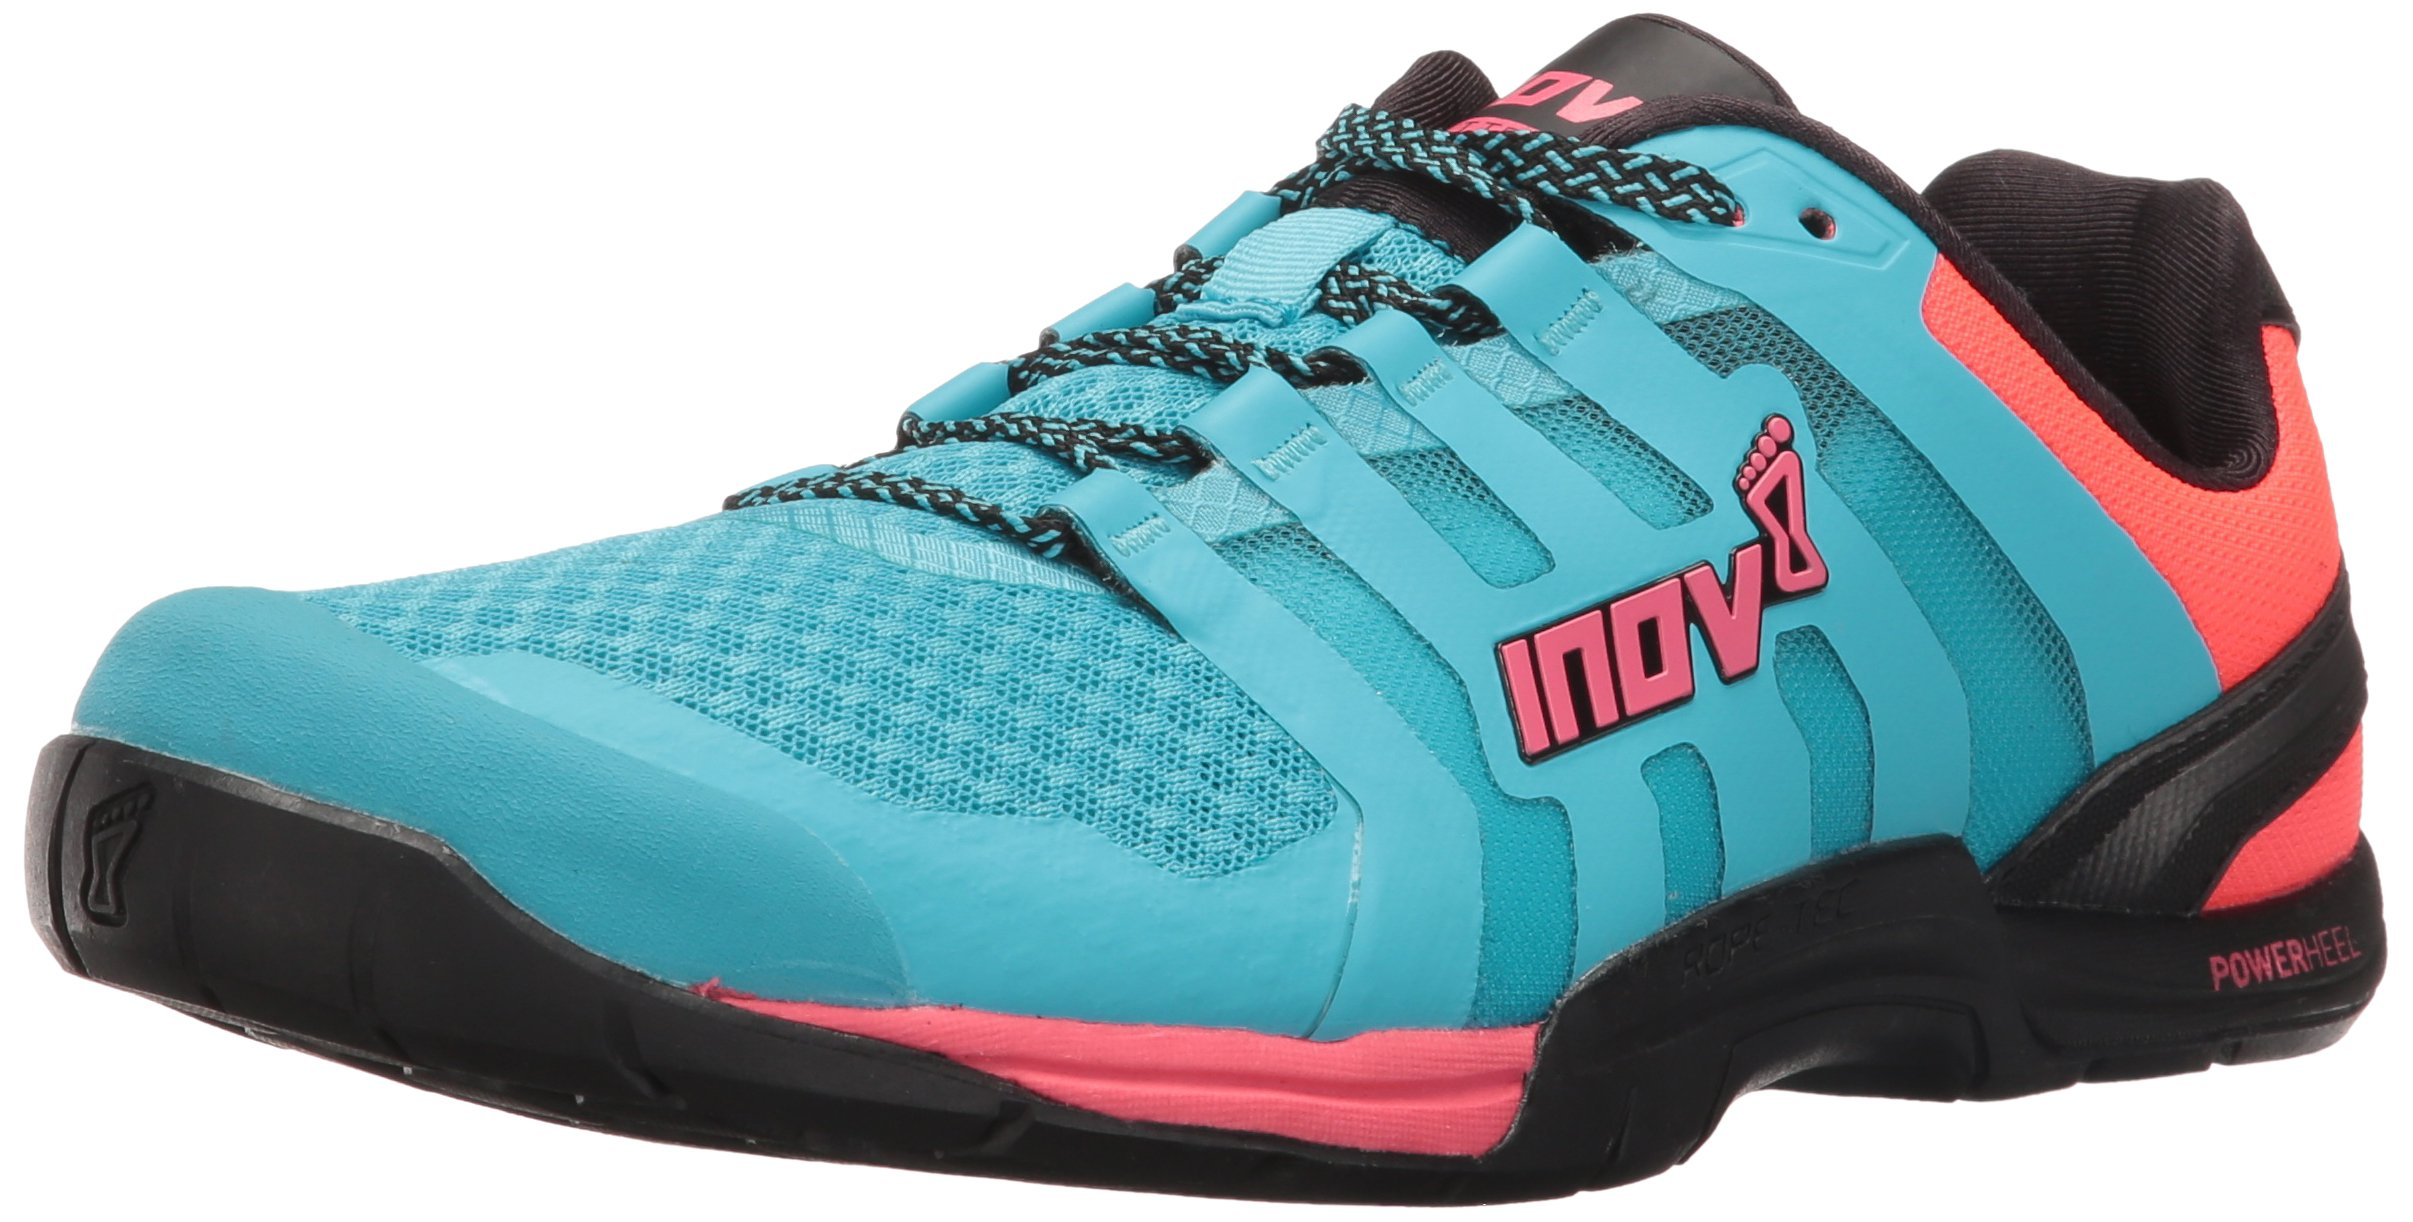 Inov-8 Women's F-LITE 235 V2 Cross-Trainer Shoe, Blue/Black/Neon Pink, 7 E US by Inov-8